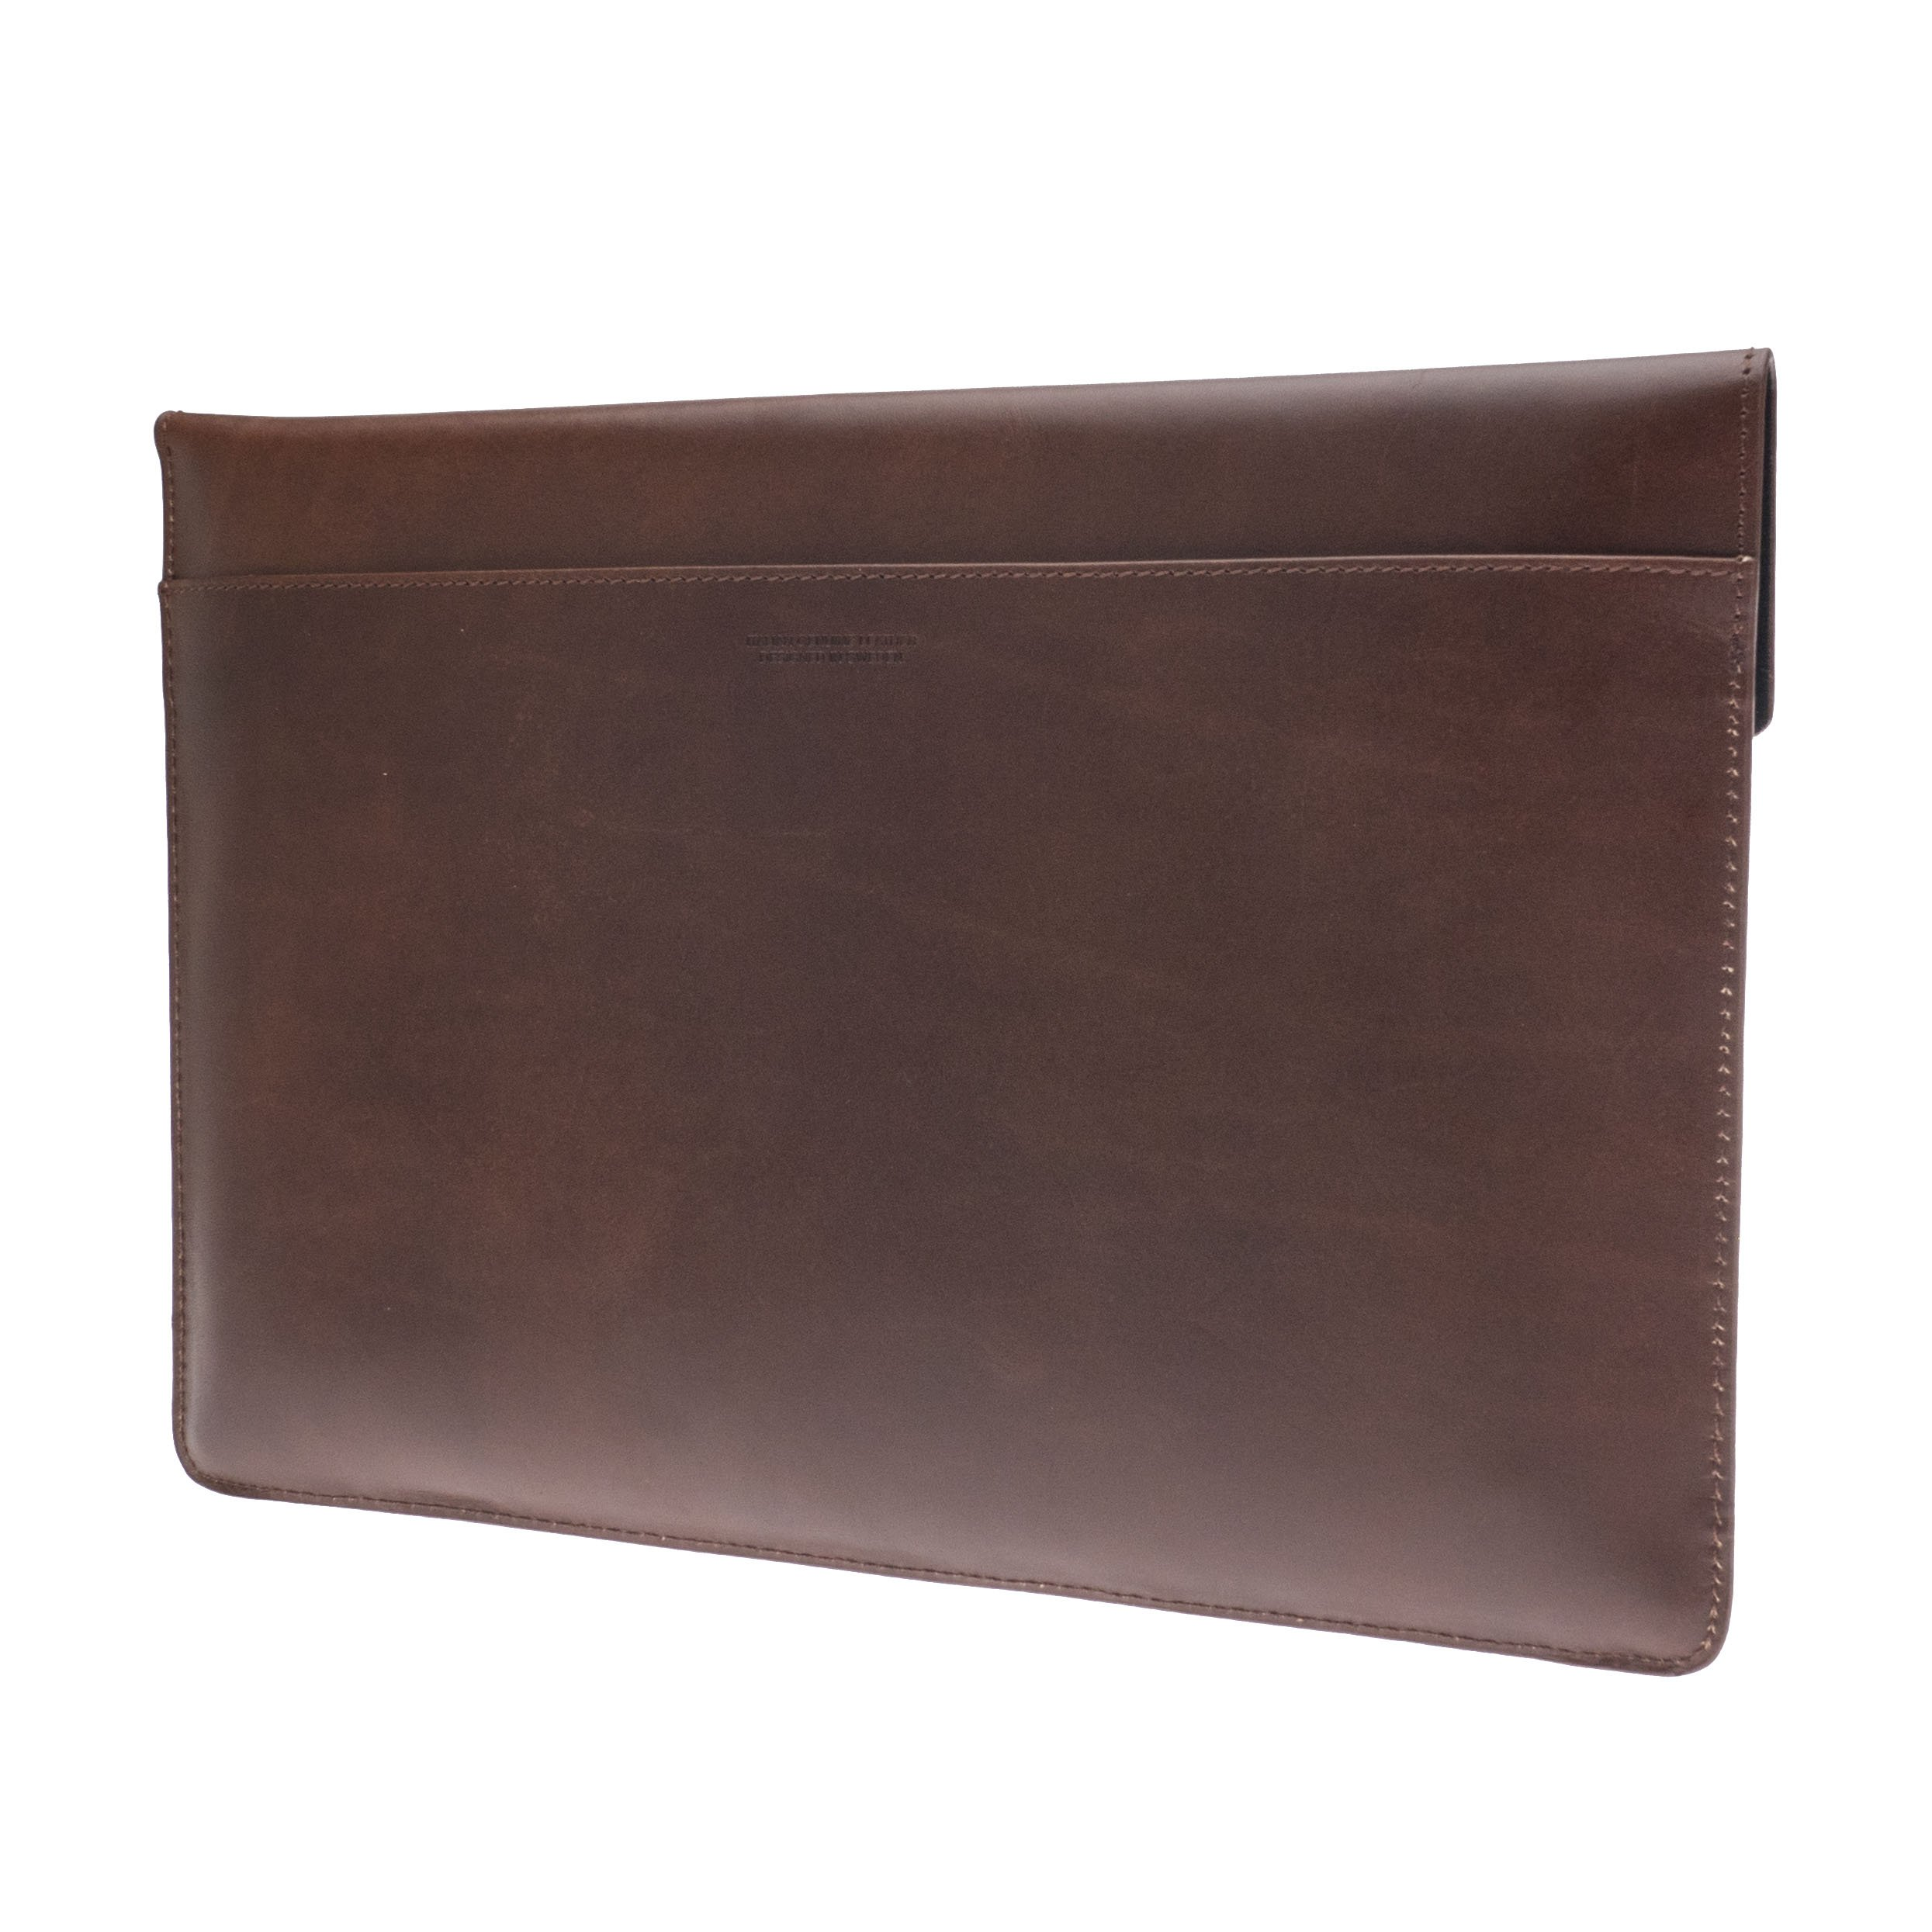 Kasper Maison Italian Leather Laptop Sleeve for 15 Inch Macbook Pro 2016 / 2017 Touch Bar – Designed Envelope Case for similar computer, notebook and ultrabook sizes - Signature Gift Included by Kasper Maison (Image #3)